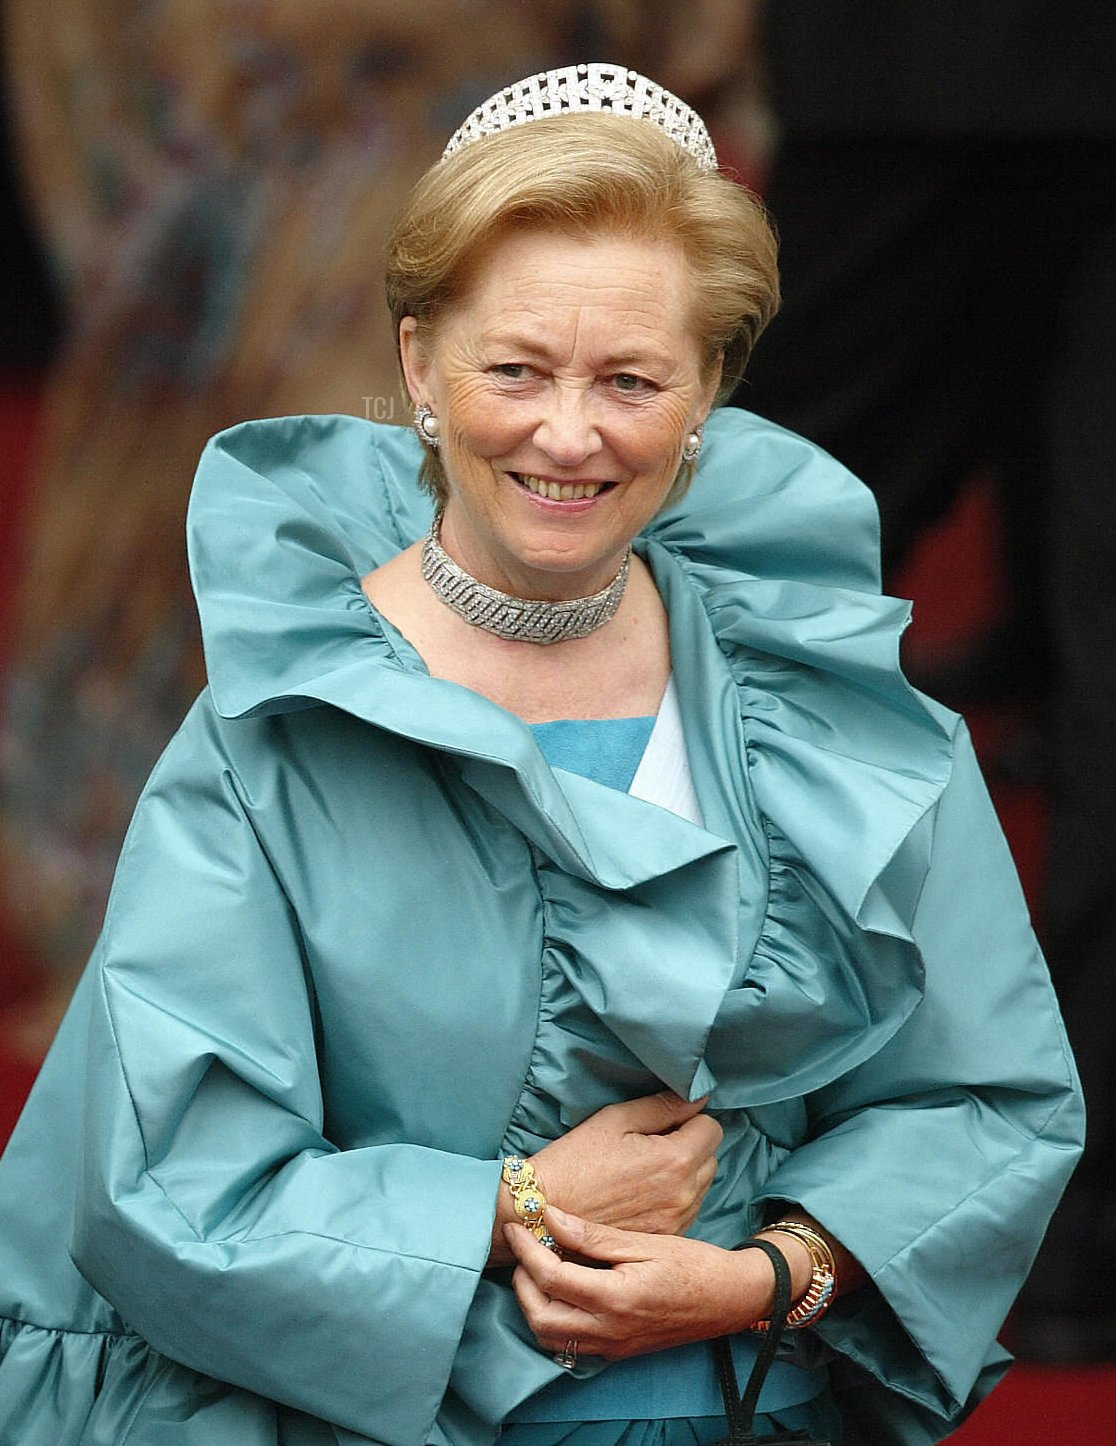 Belgium's Queen Paola arrives at the Copenhagen Cathedral for the wedding of Mary Elisabeth Donaldson and Crown Prince Frederik of Denmark, 14 May 2004